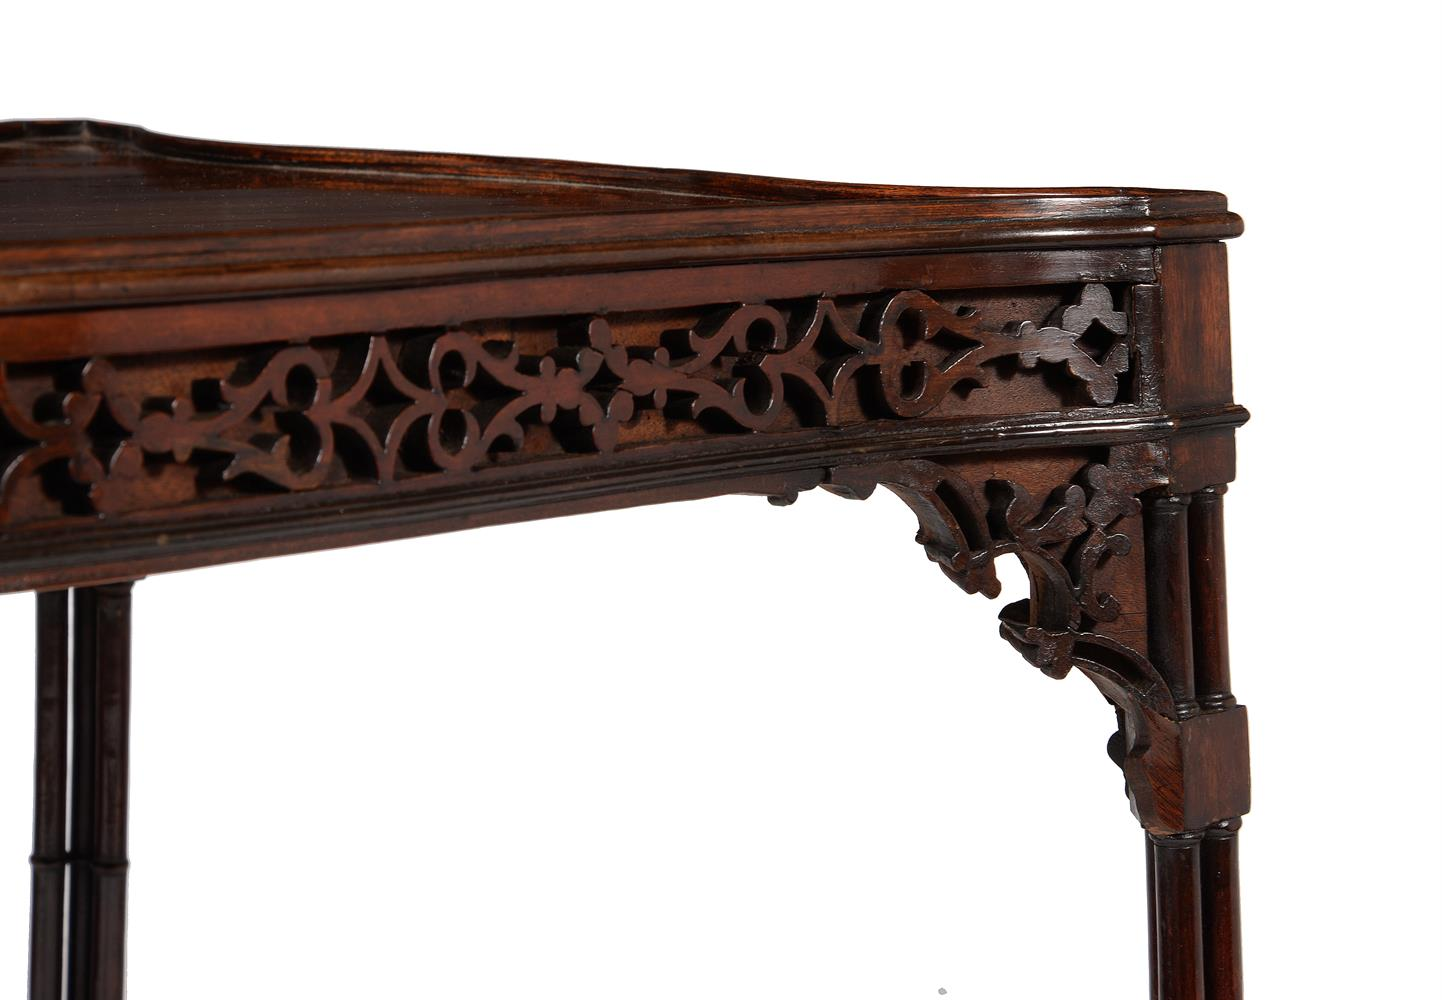 A GEORGE III MAHOGANY SERPENTINE SILVER TABLE, CIRCA 1775 - Image 4 of 5